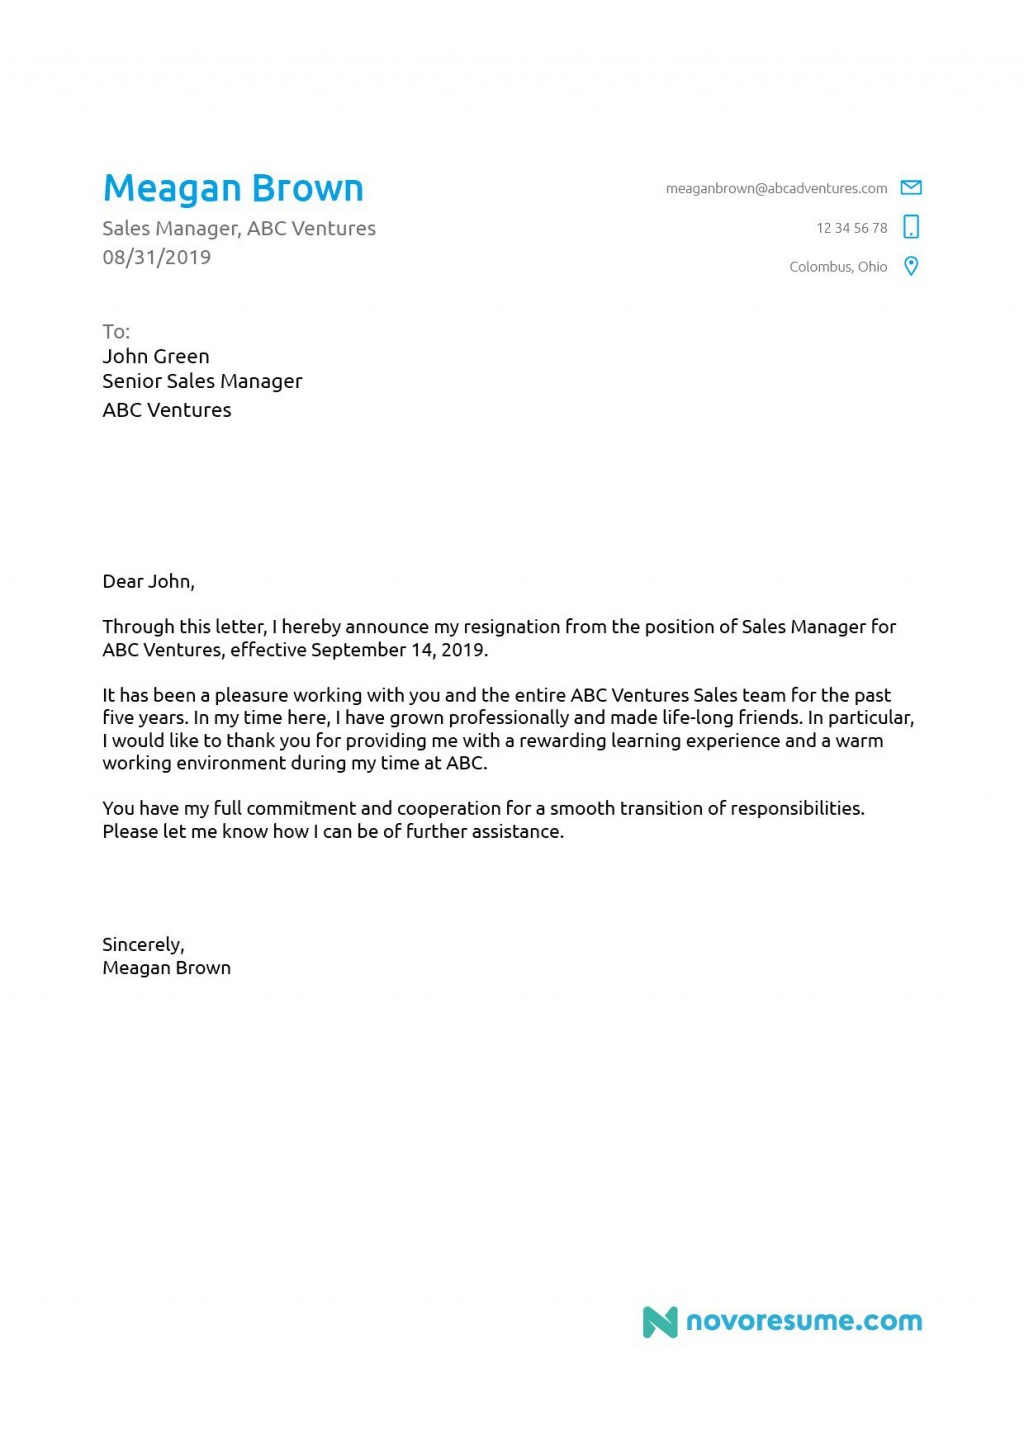 006 Remarkable Template For Letter Of Resignation Concept  Free With Notice Period WordLarge